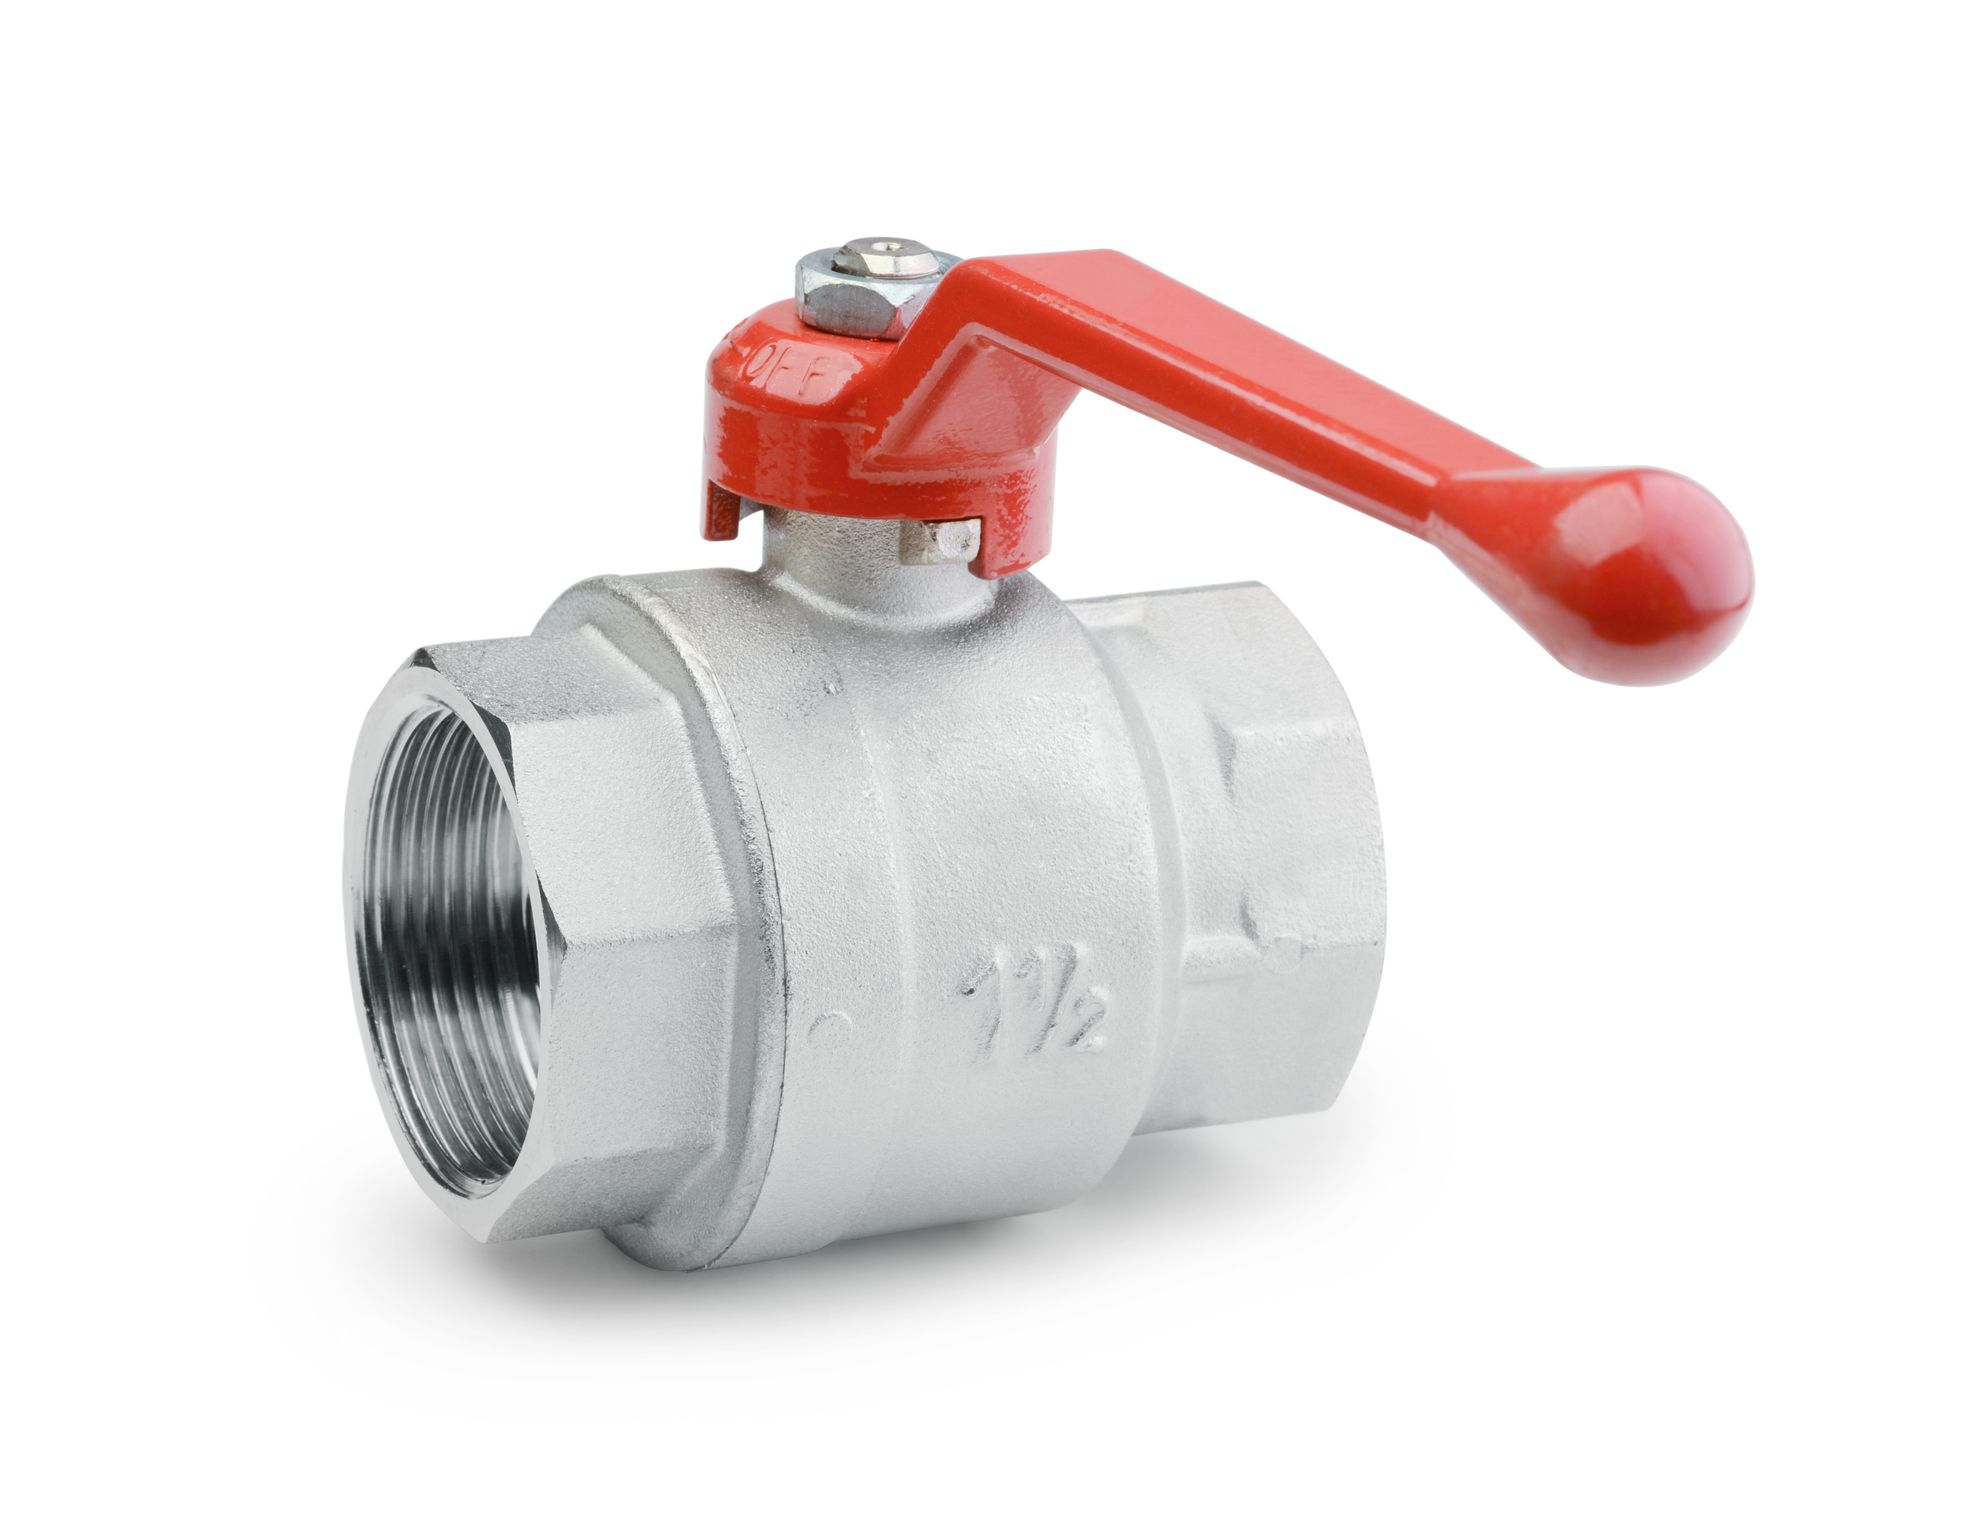 Ball valve isolated on a white background